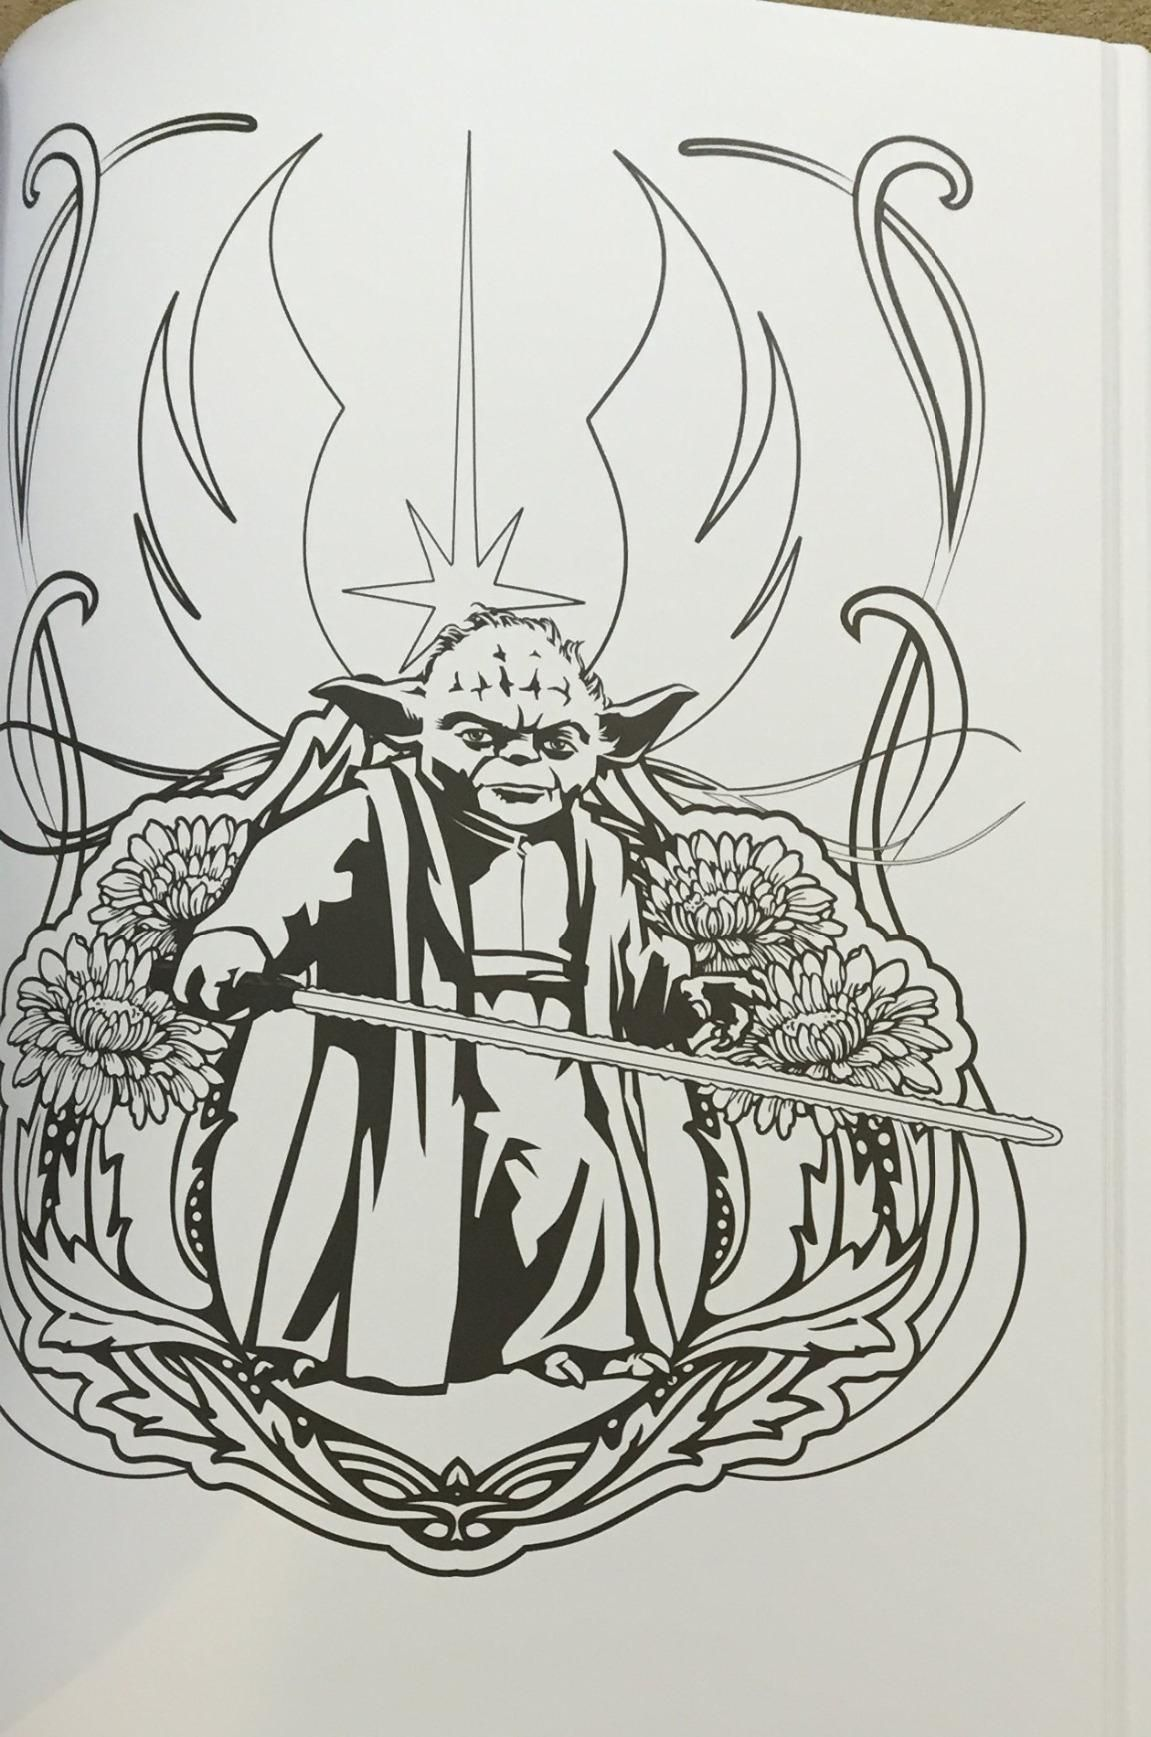 Art Of Coloring Star Wars 100 Images To Inspire Creativity And Relaxation Therapy